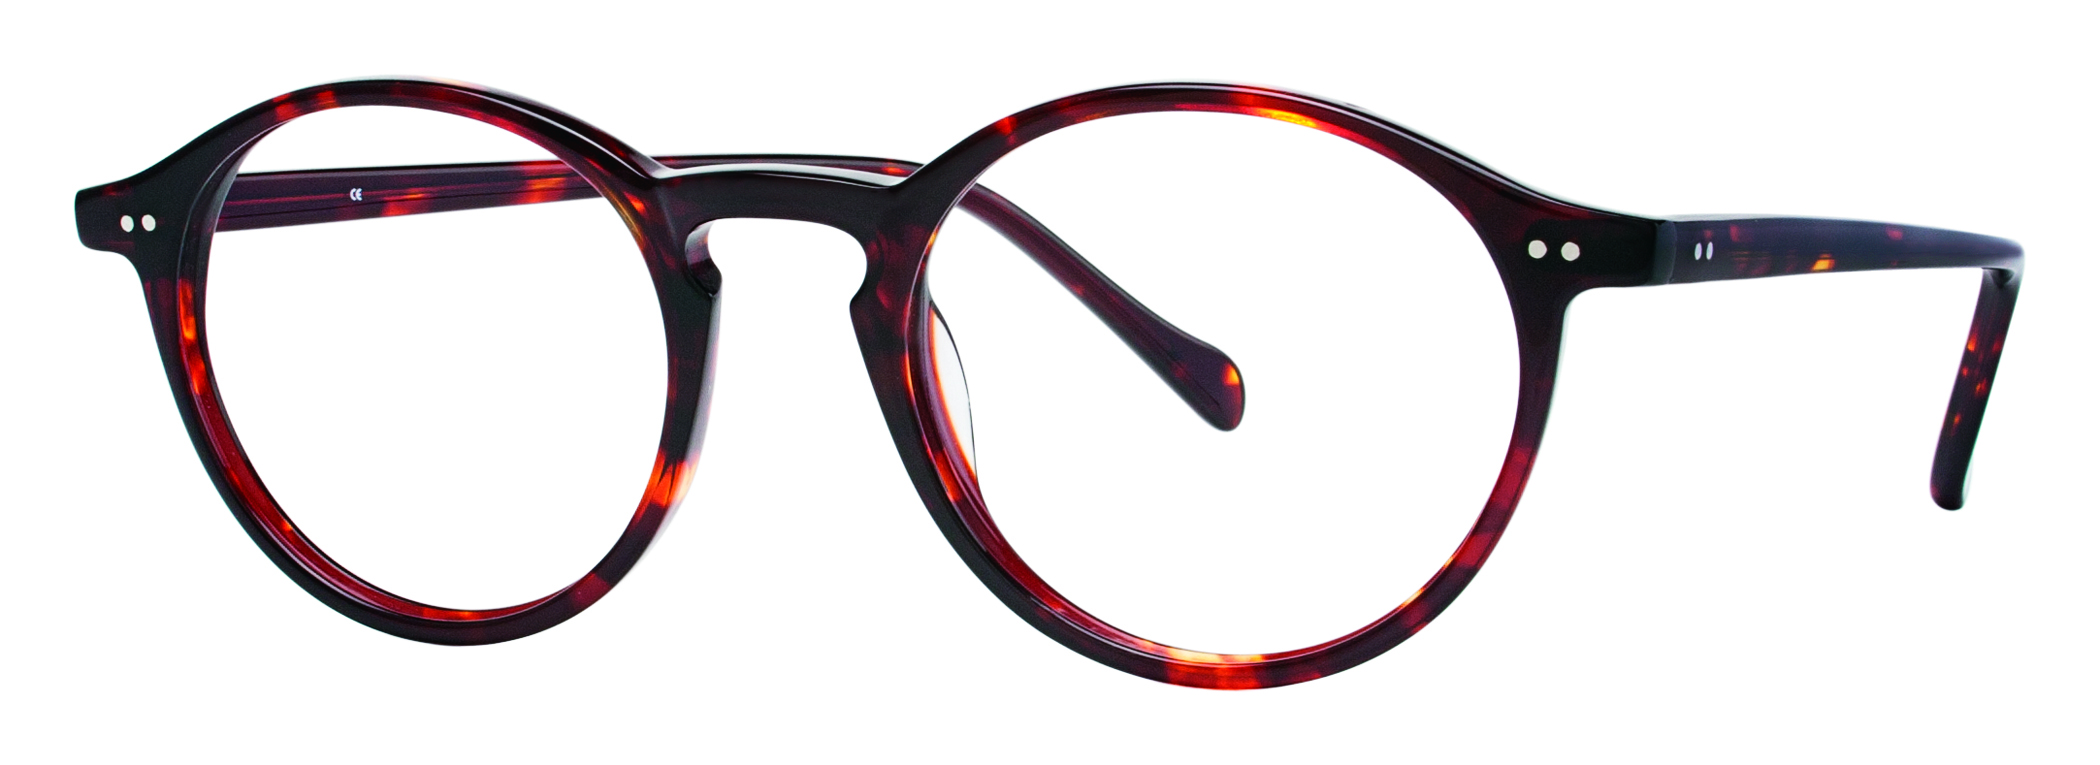 Eyeglass Frame : Round Eyeglasses Circle Back at Eyeglass.com